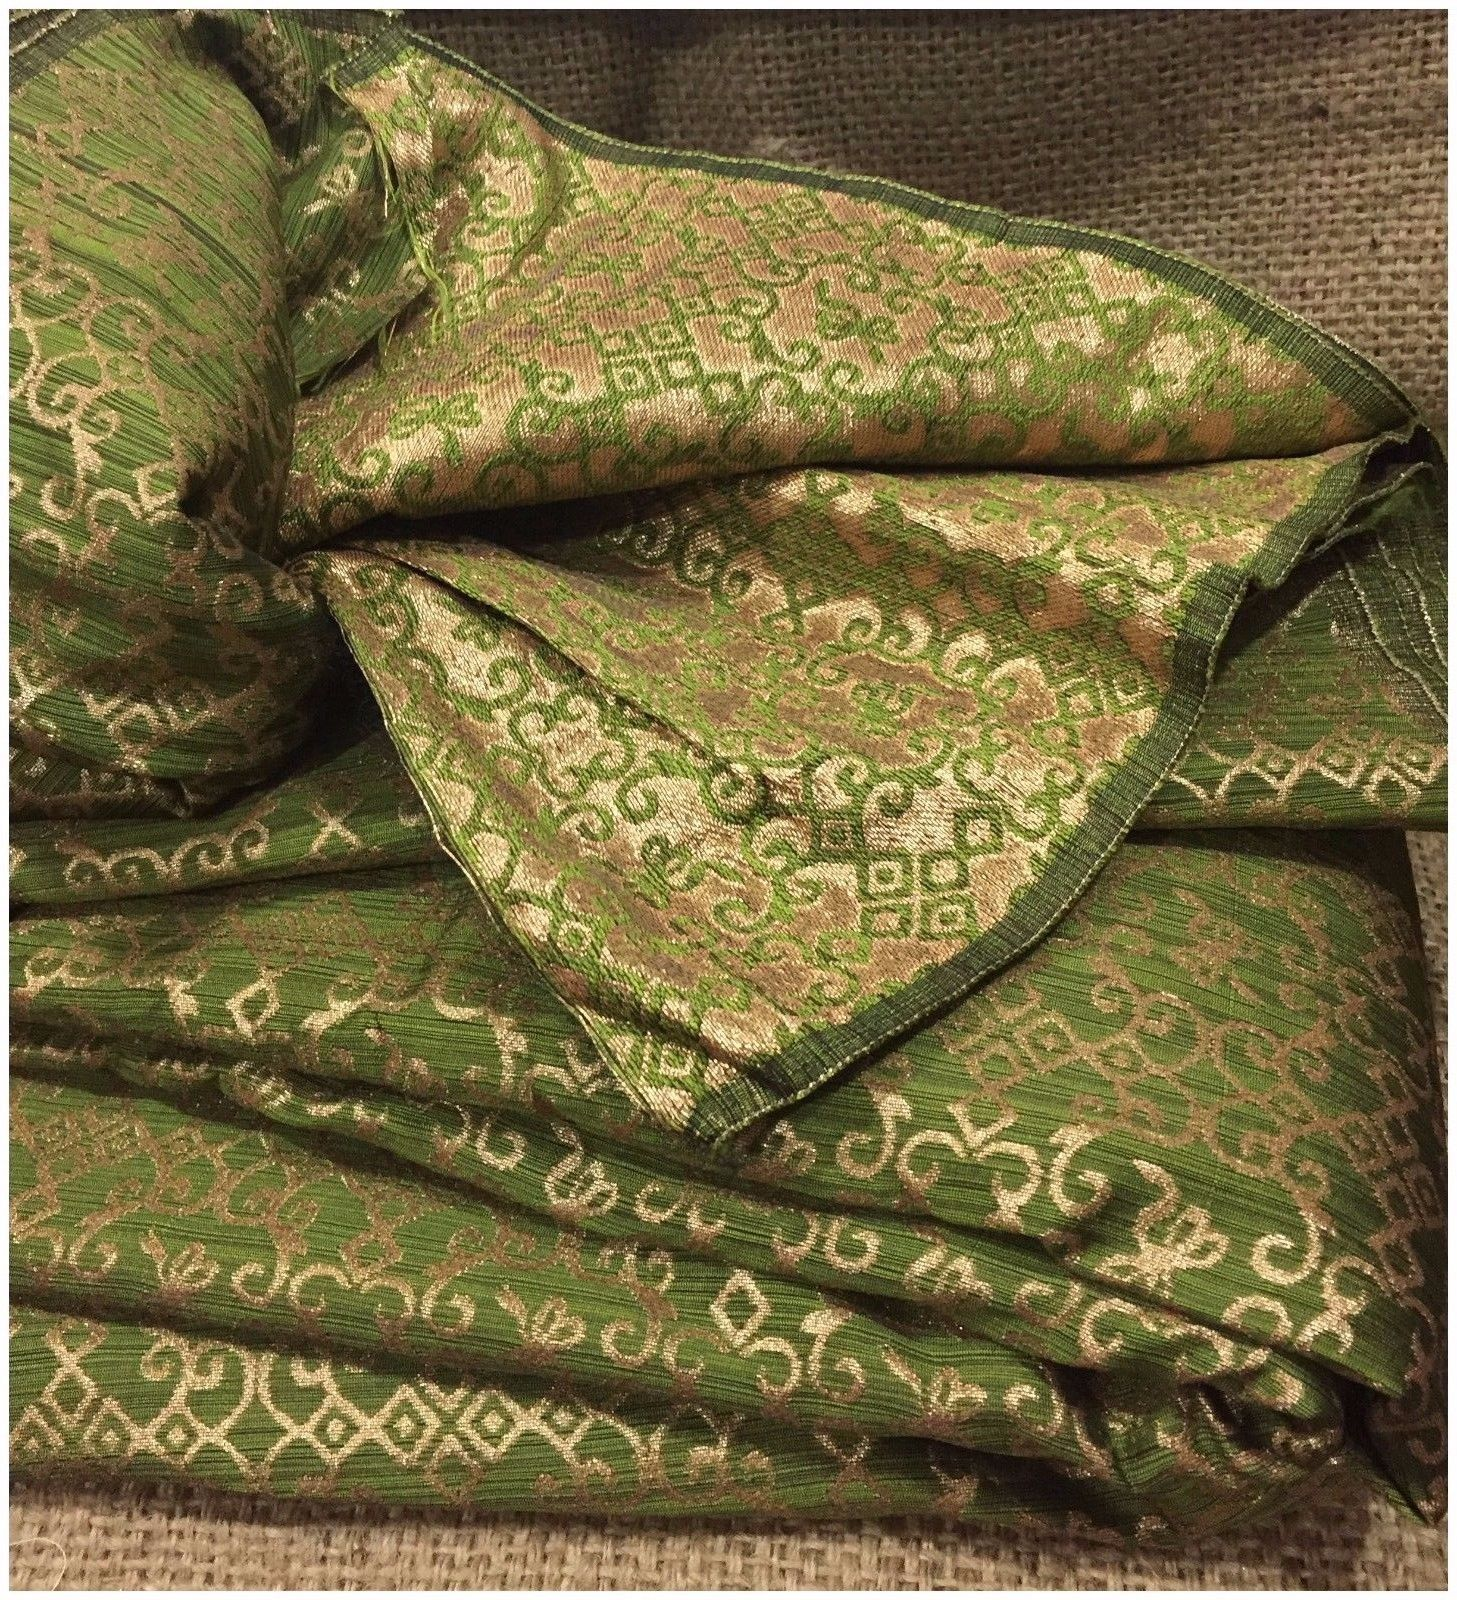 brocade fabricÊprice per meter 43 inches wide, Copper Jacquard Synthetic Brocade medium weight